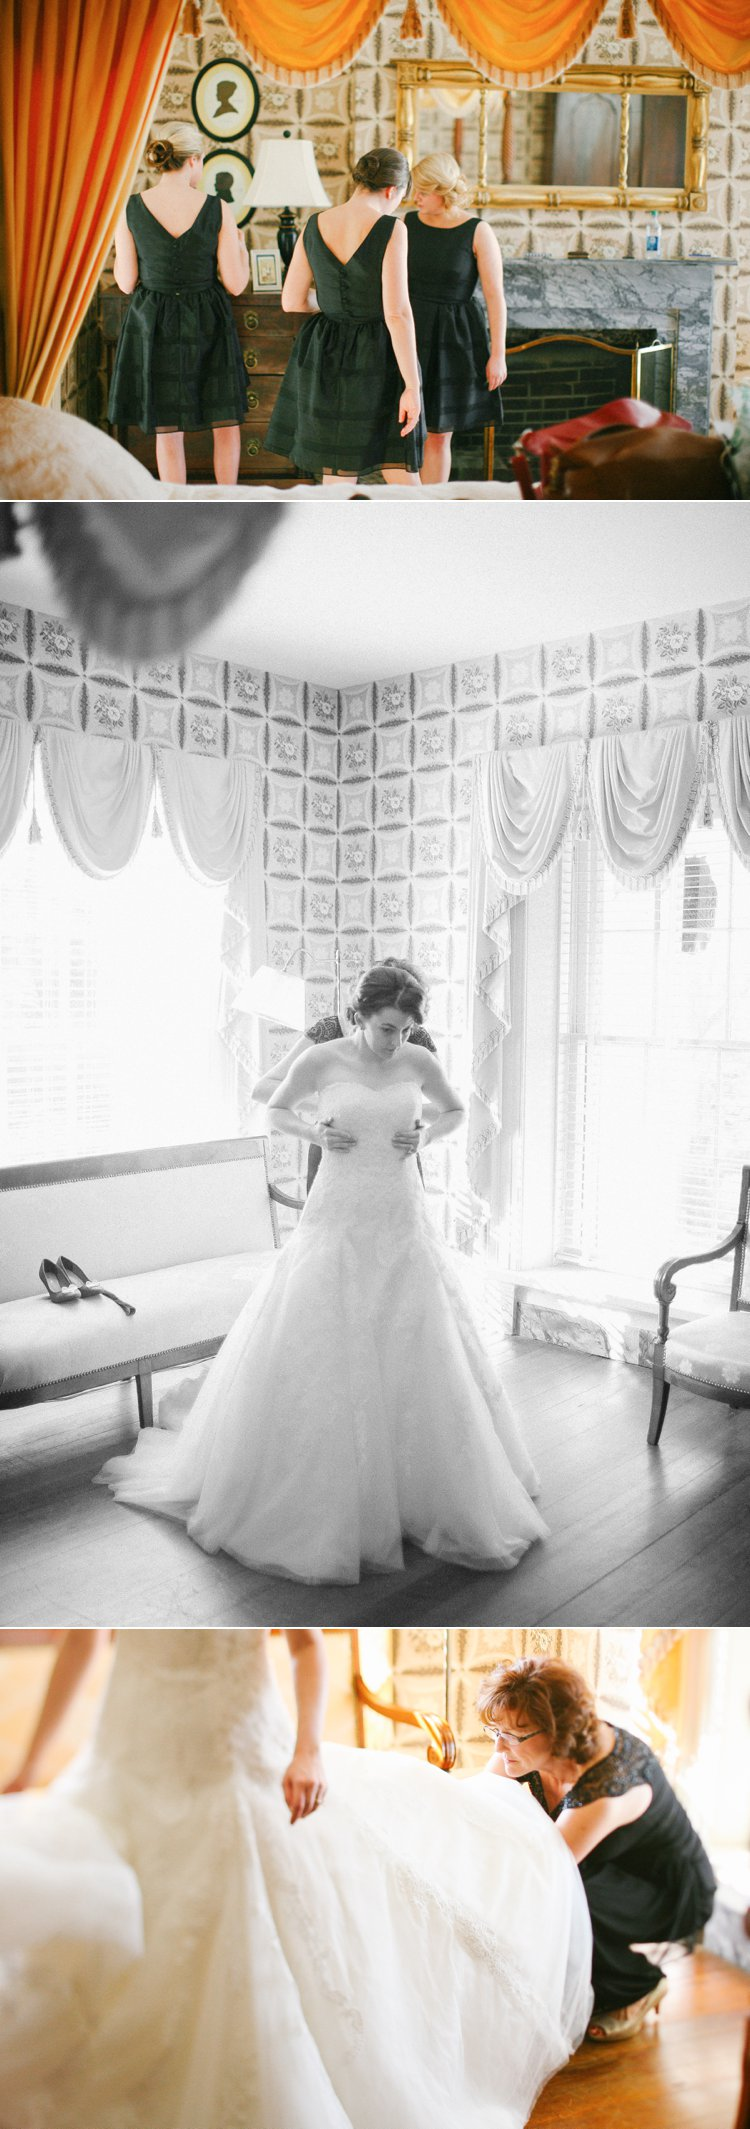 View More: http://httpkristinpartincom.pass.us/elovichwedding